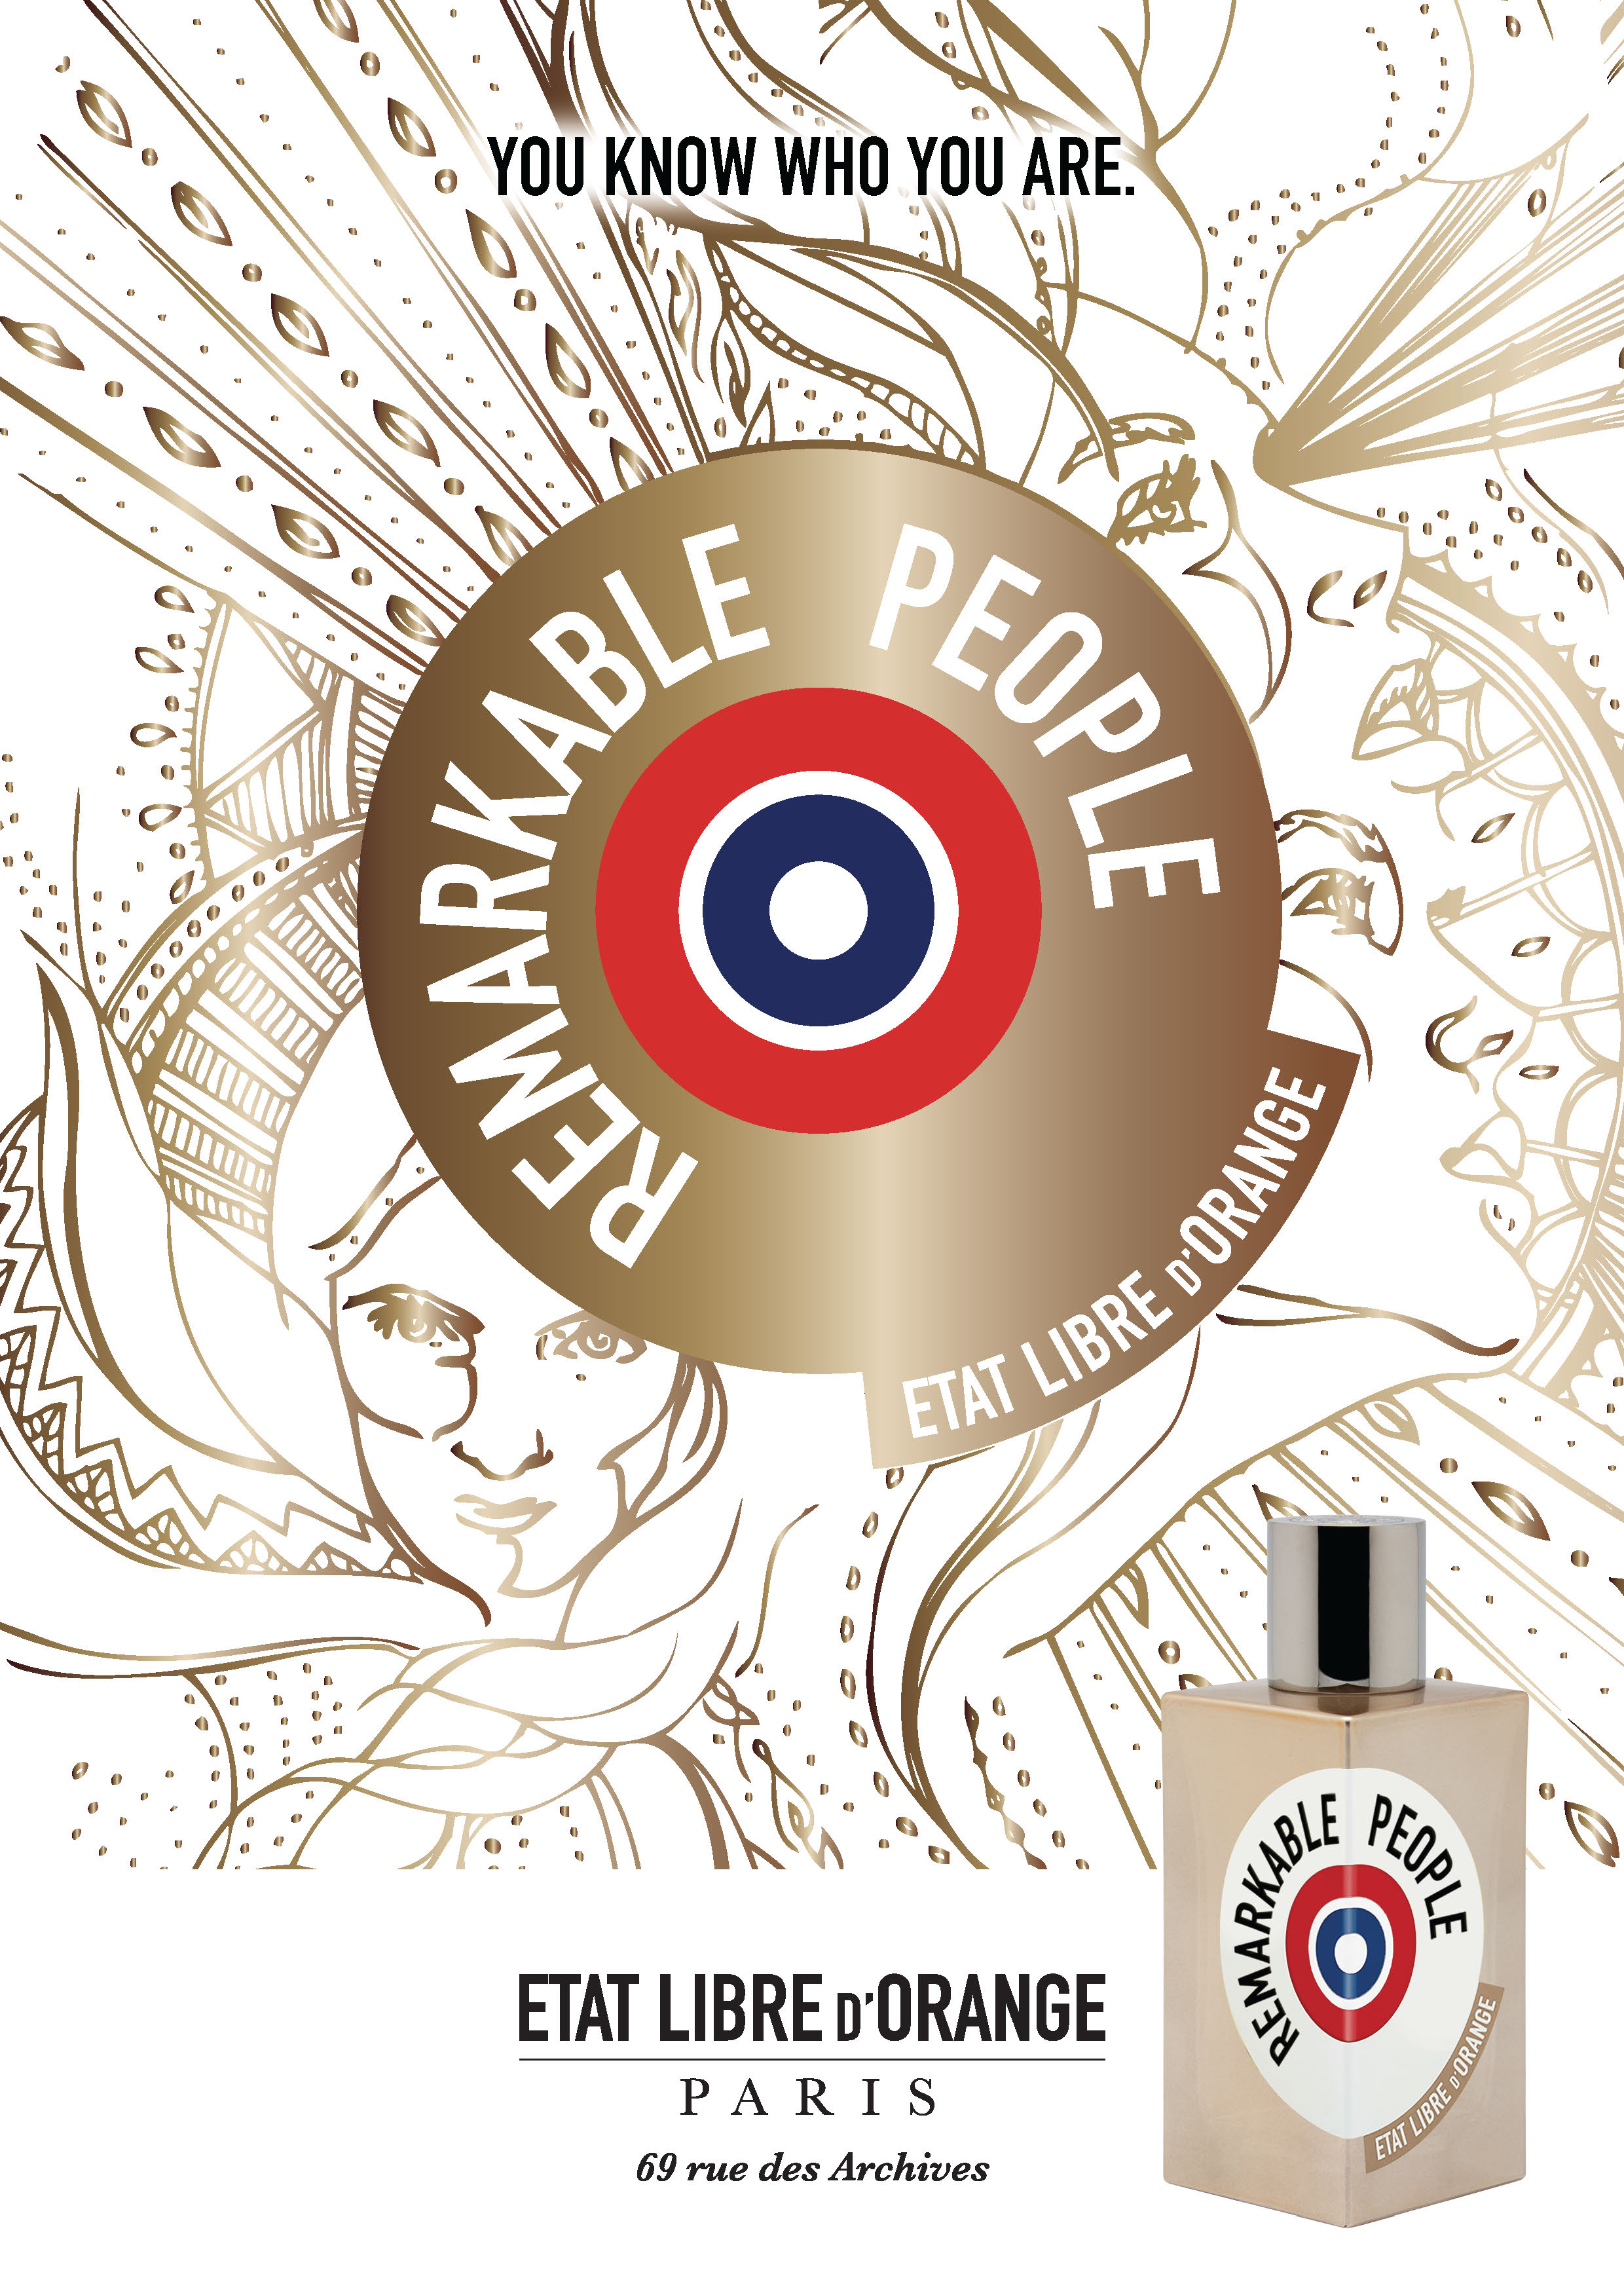 Your Scent Resolution for 2018: Remarkable People by Etat Libre d'Orange